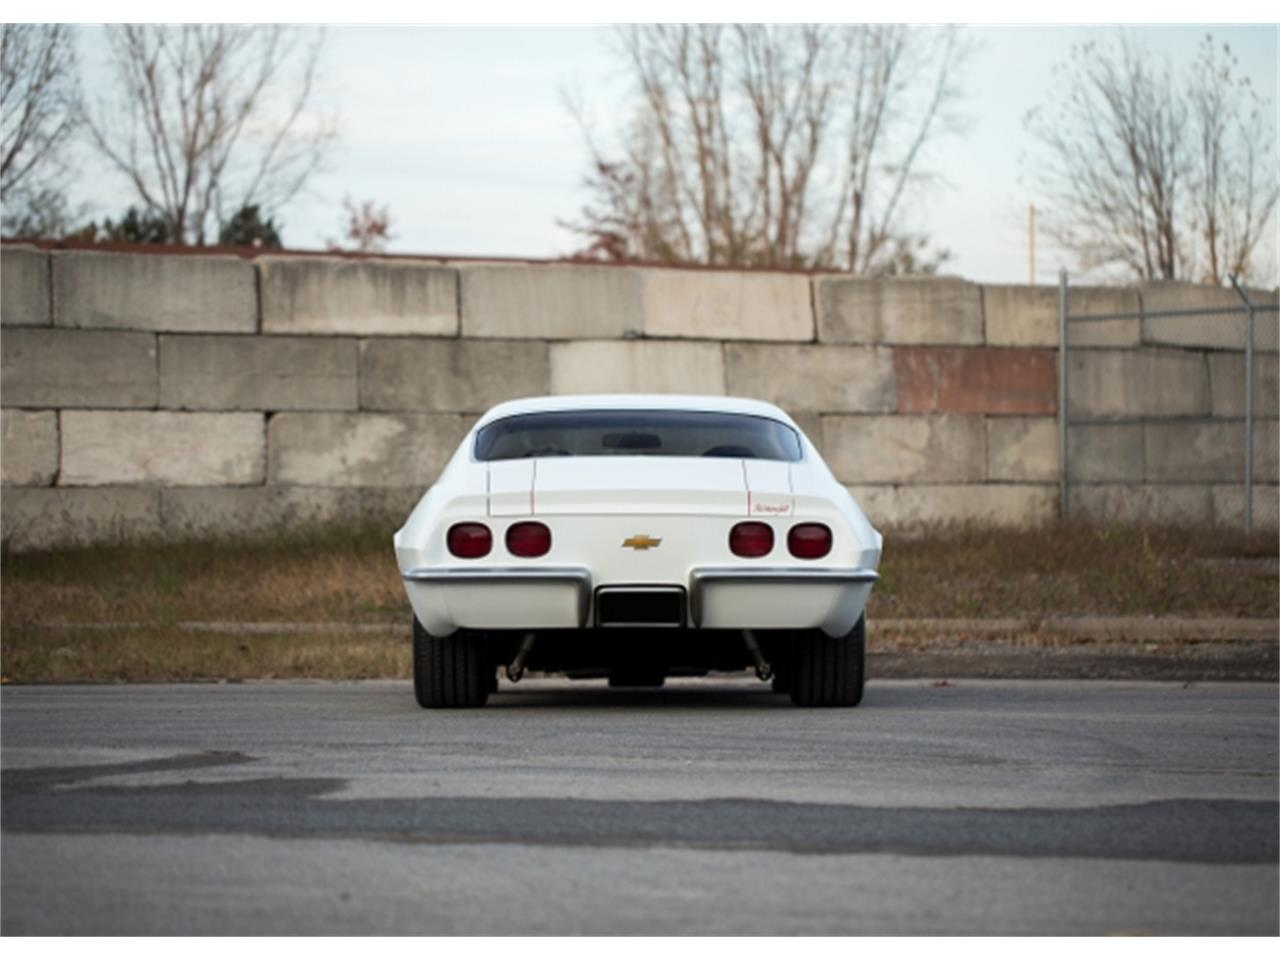 Large Picture of '70 Camaro located in Ohio - $99,000.00 Offered by a Private Seller - GGNI